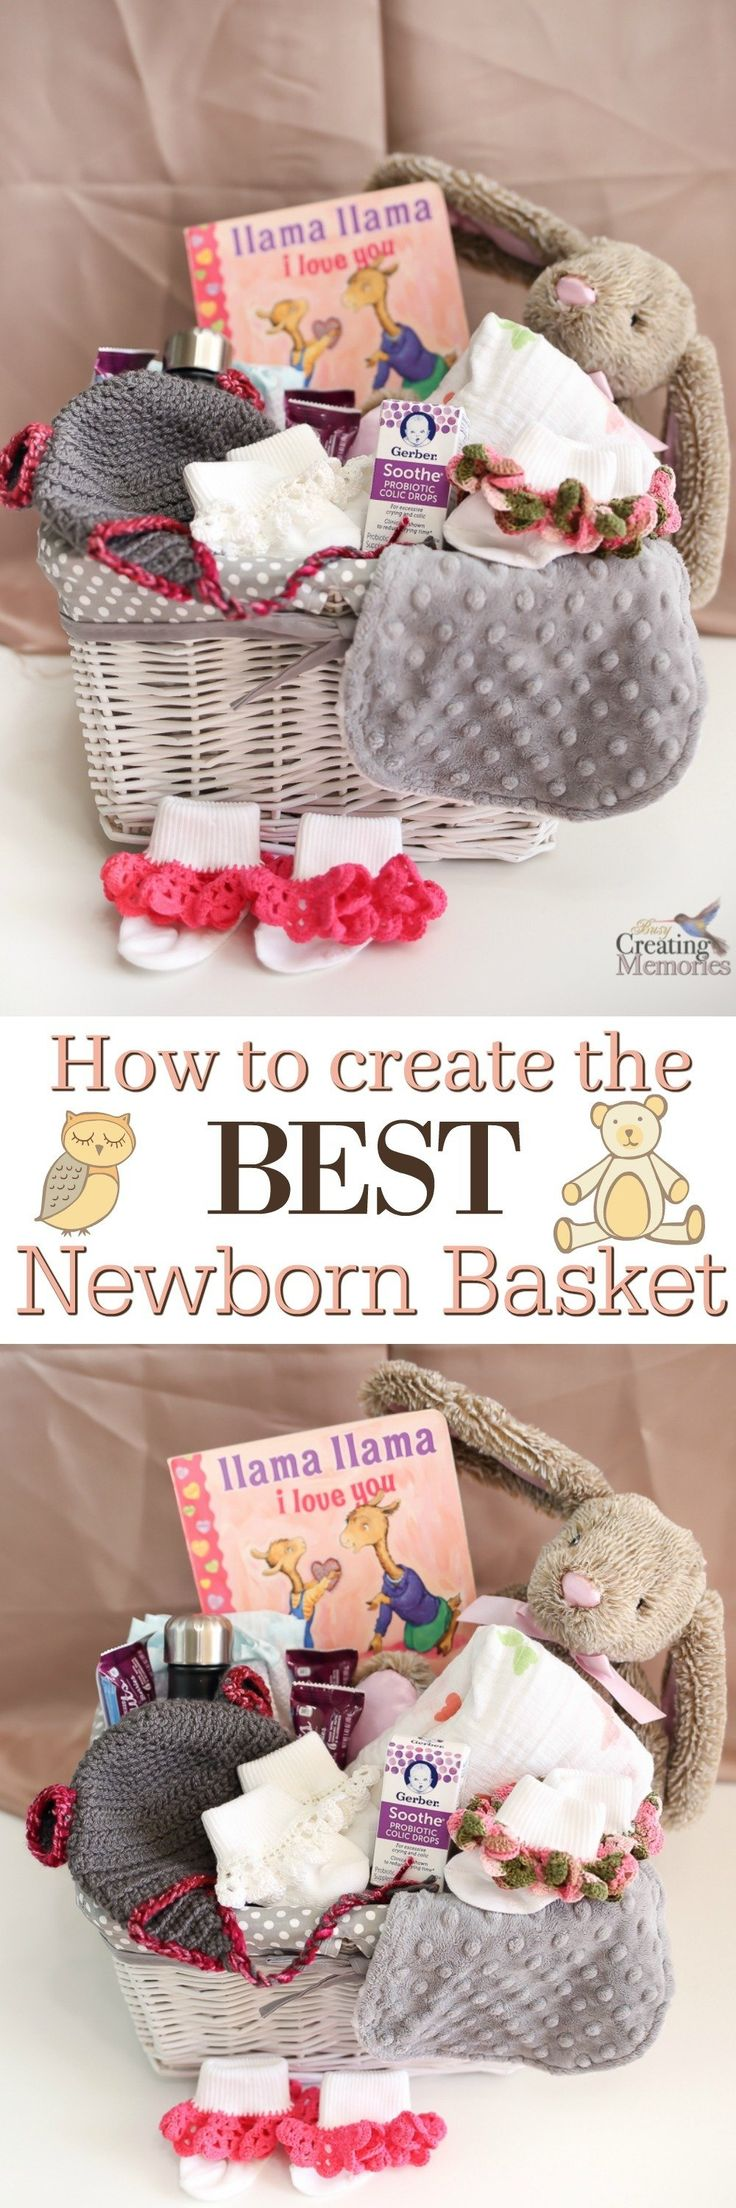 Best 25+ Newborn baby gifts ideas on Pinterest | Funny baby ...